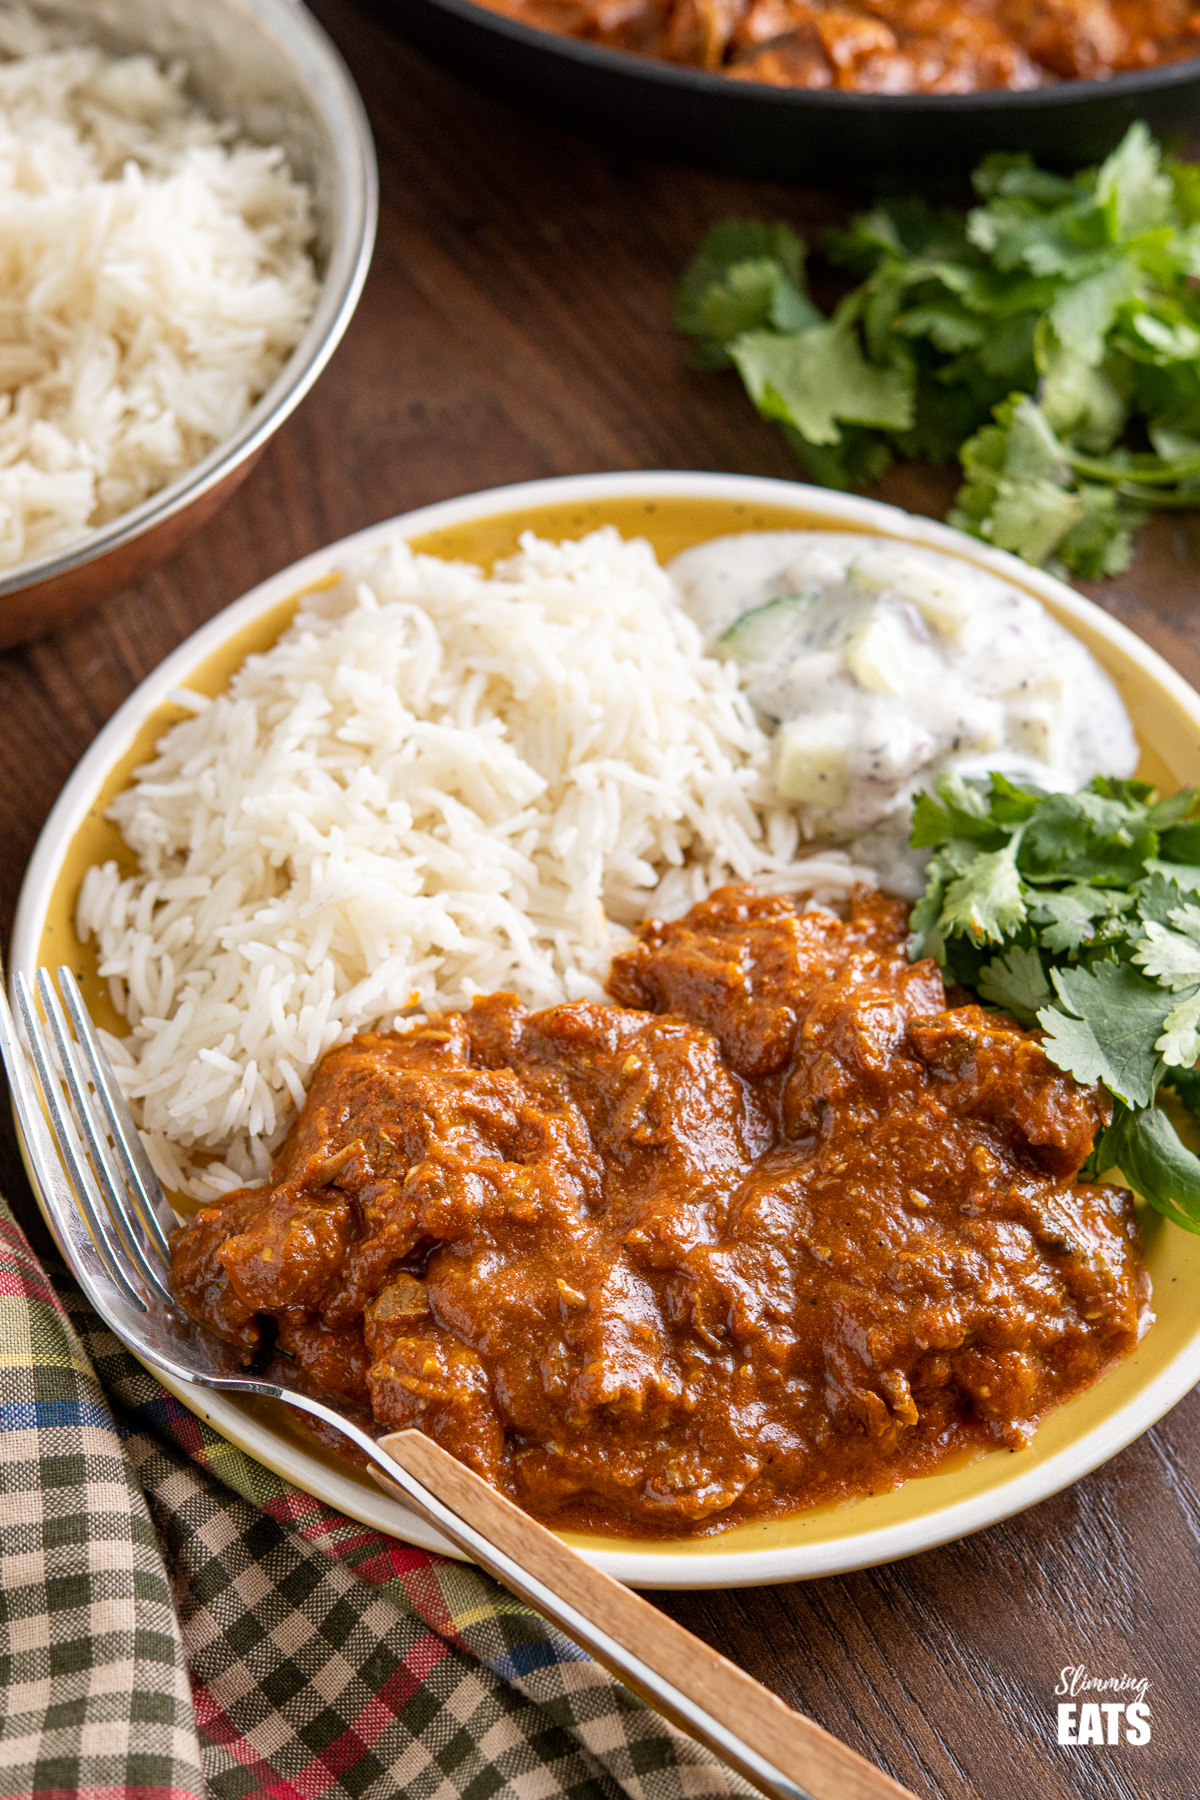 Lamb Rogan Josh on yellow plate with rice and raita and cilantro, wooden handle fork place on the plate